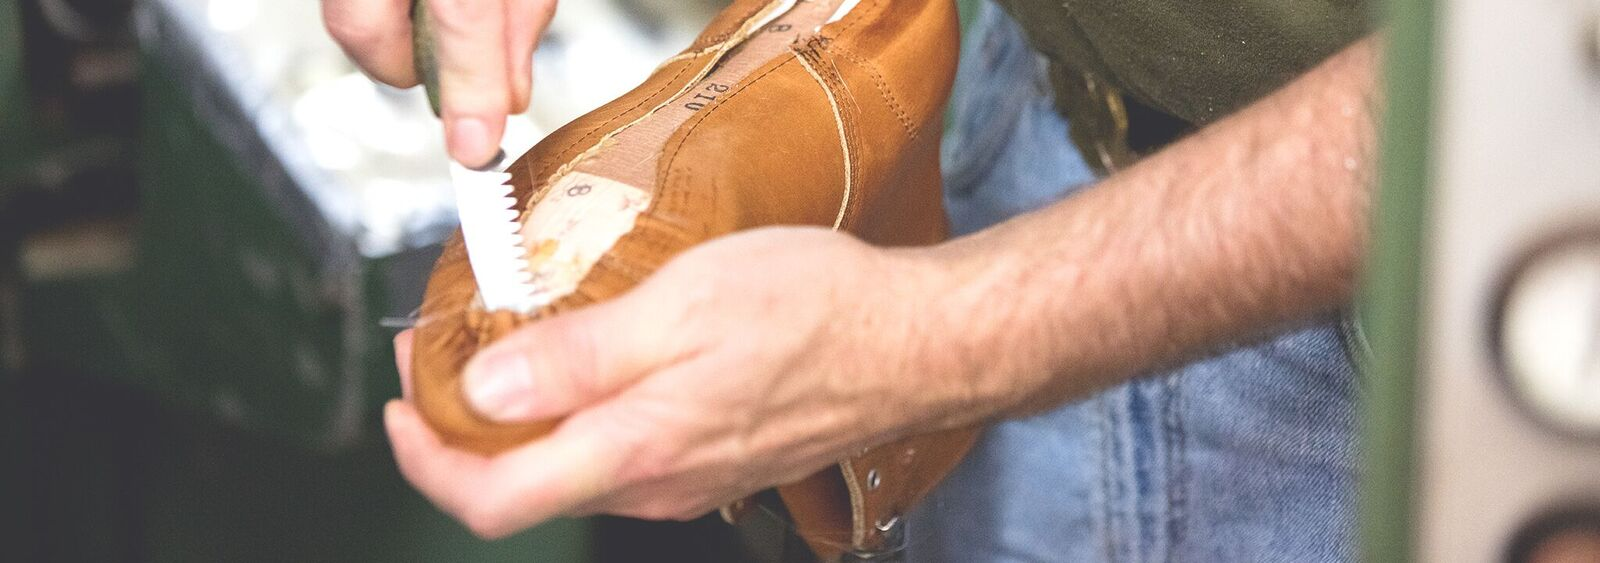 Boot Lasting at the Factory